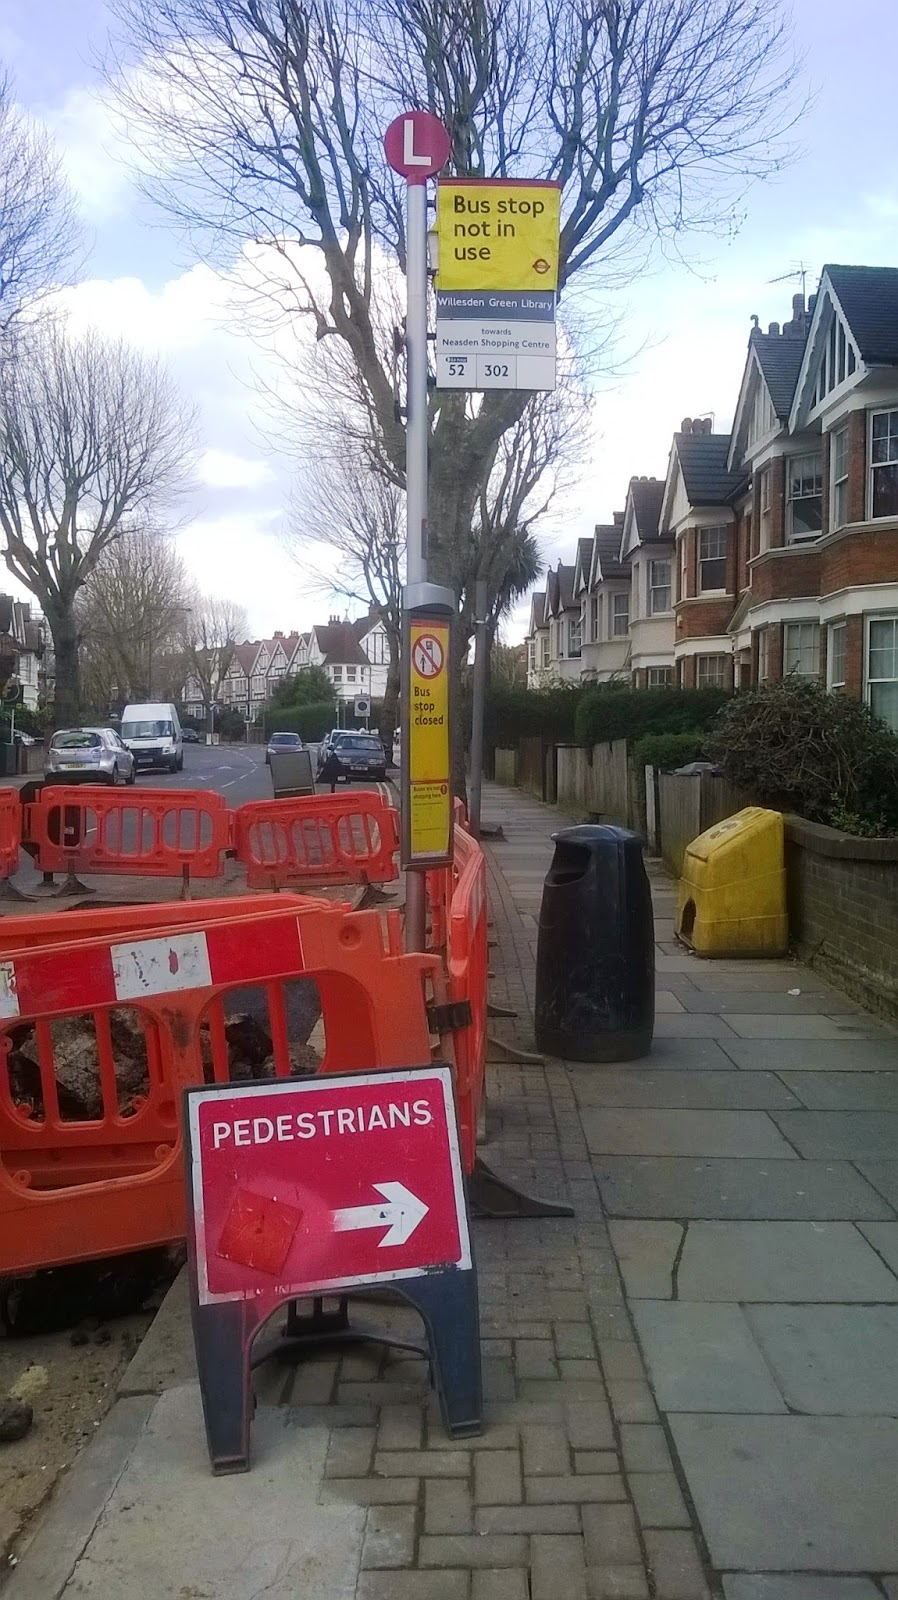 WEMBLEY MATTERS: Bus stop closed by redevelopment provokes fury in